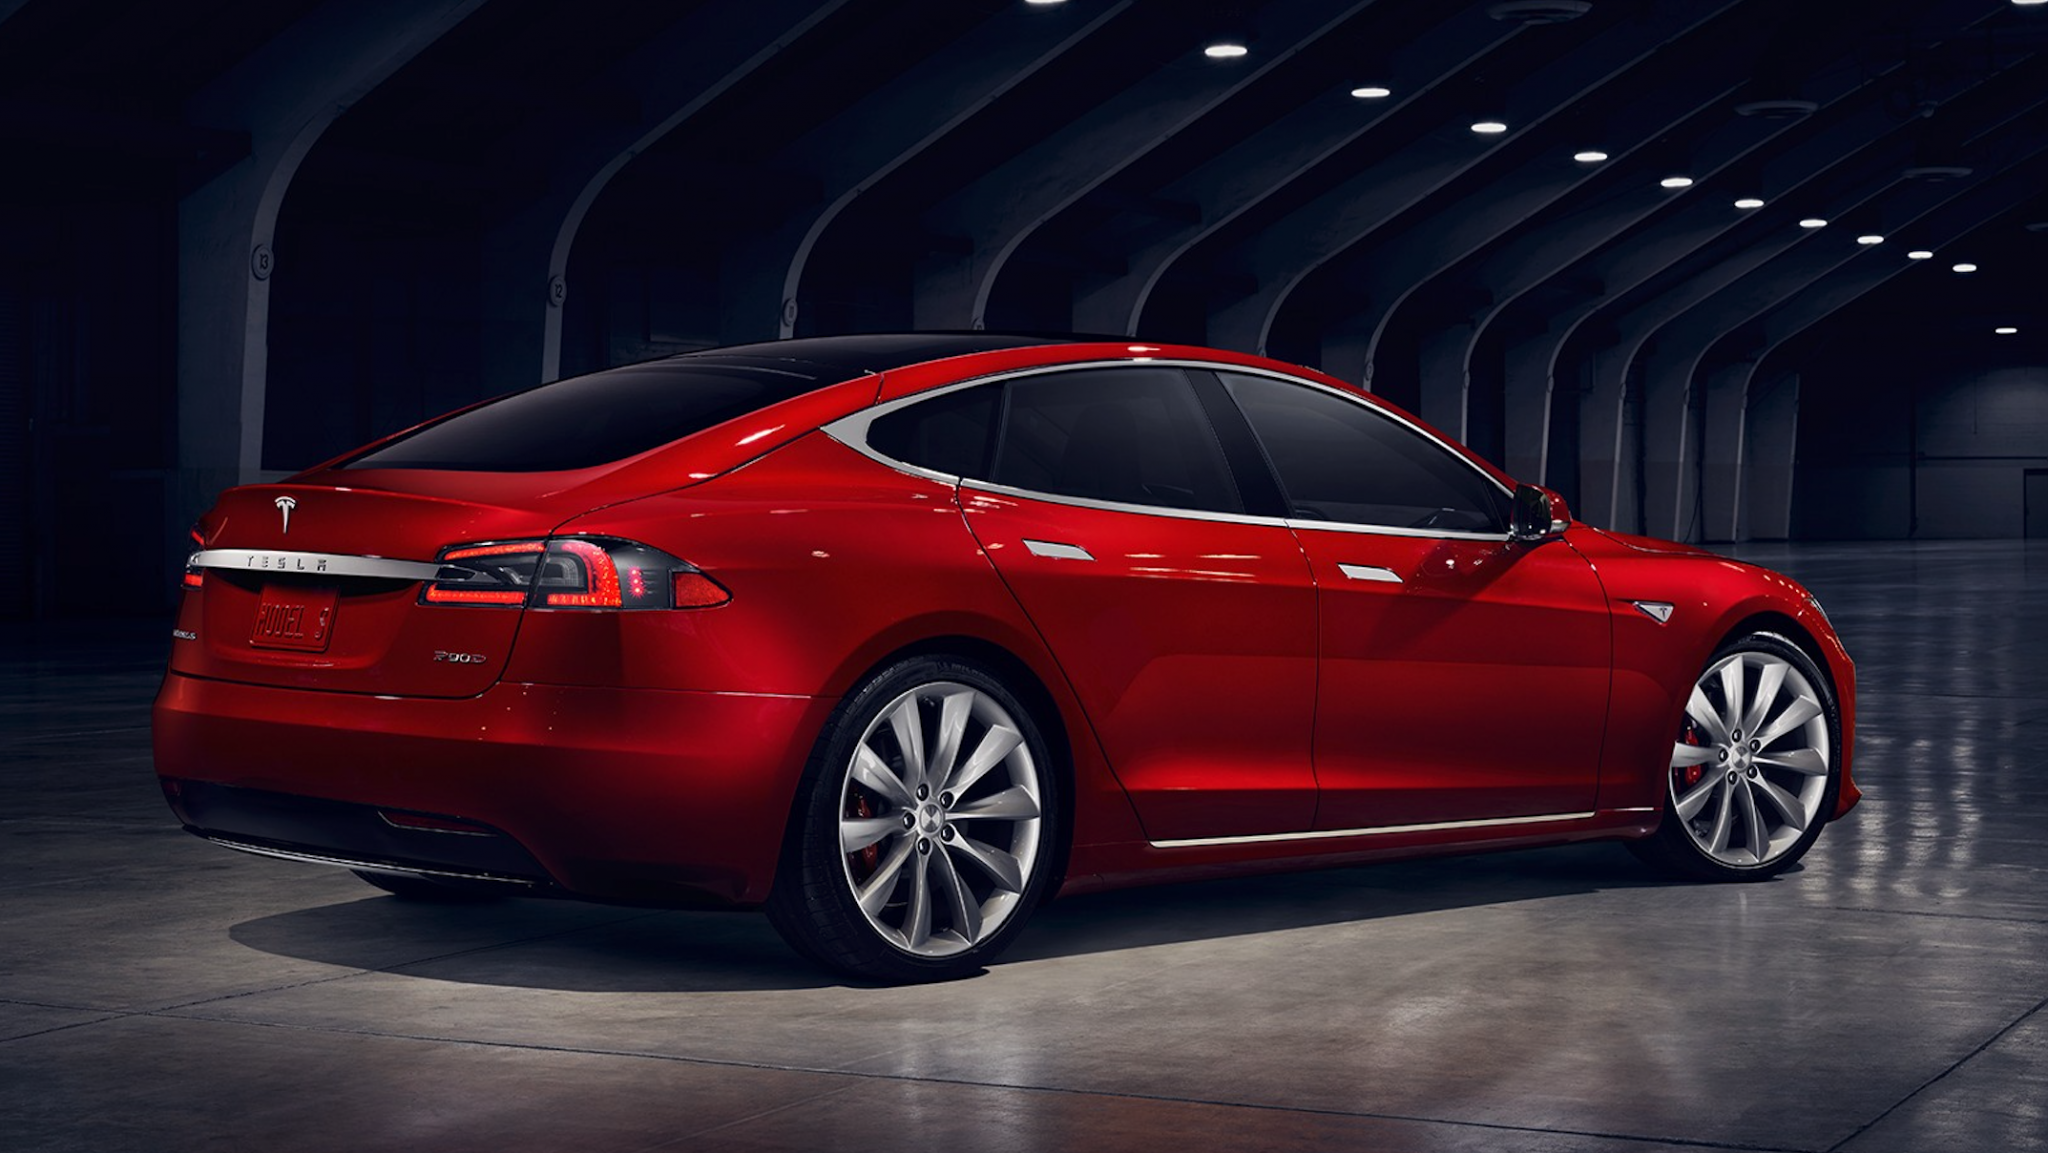 Reasons To Add Window Tint Your Tesla in Denver, Colorado